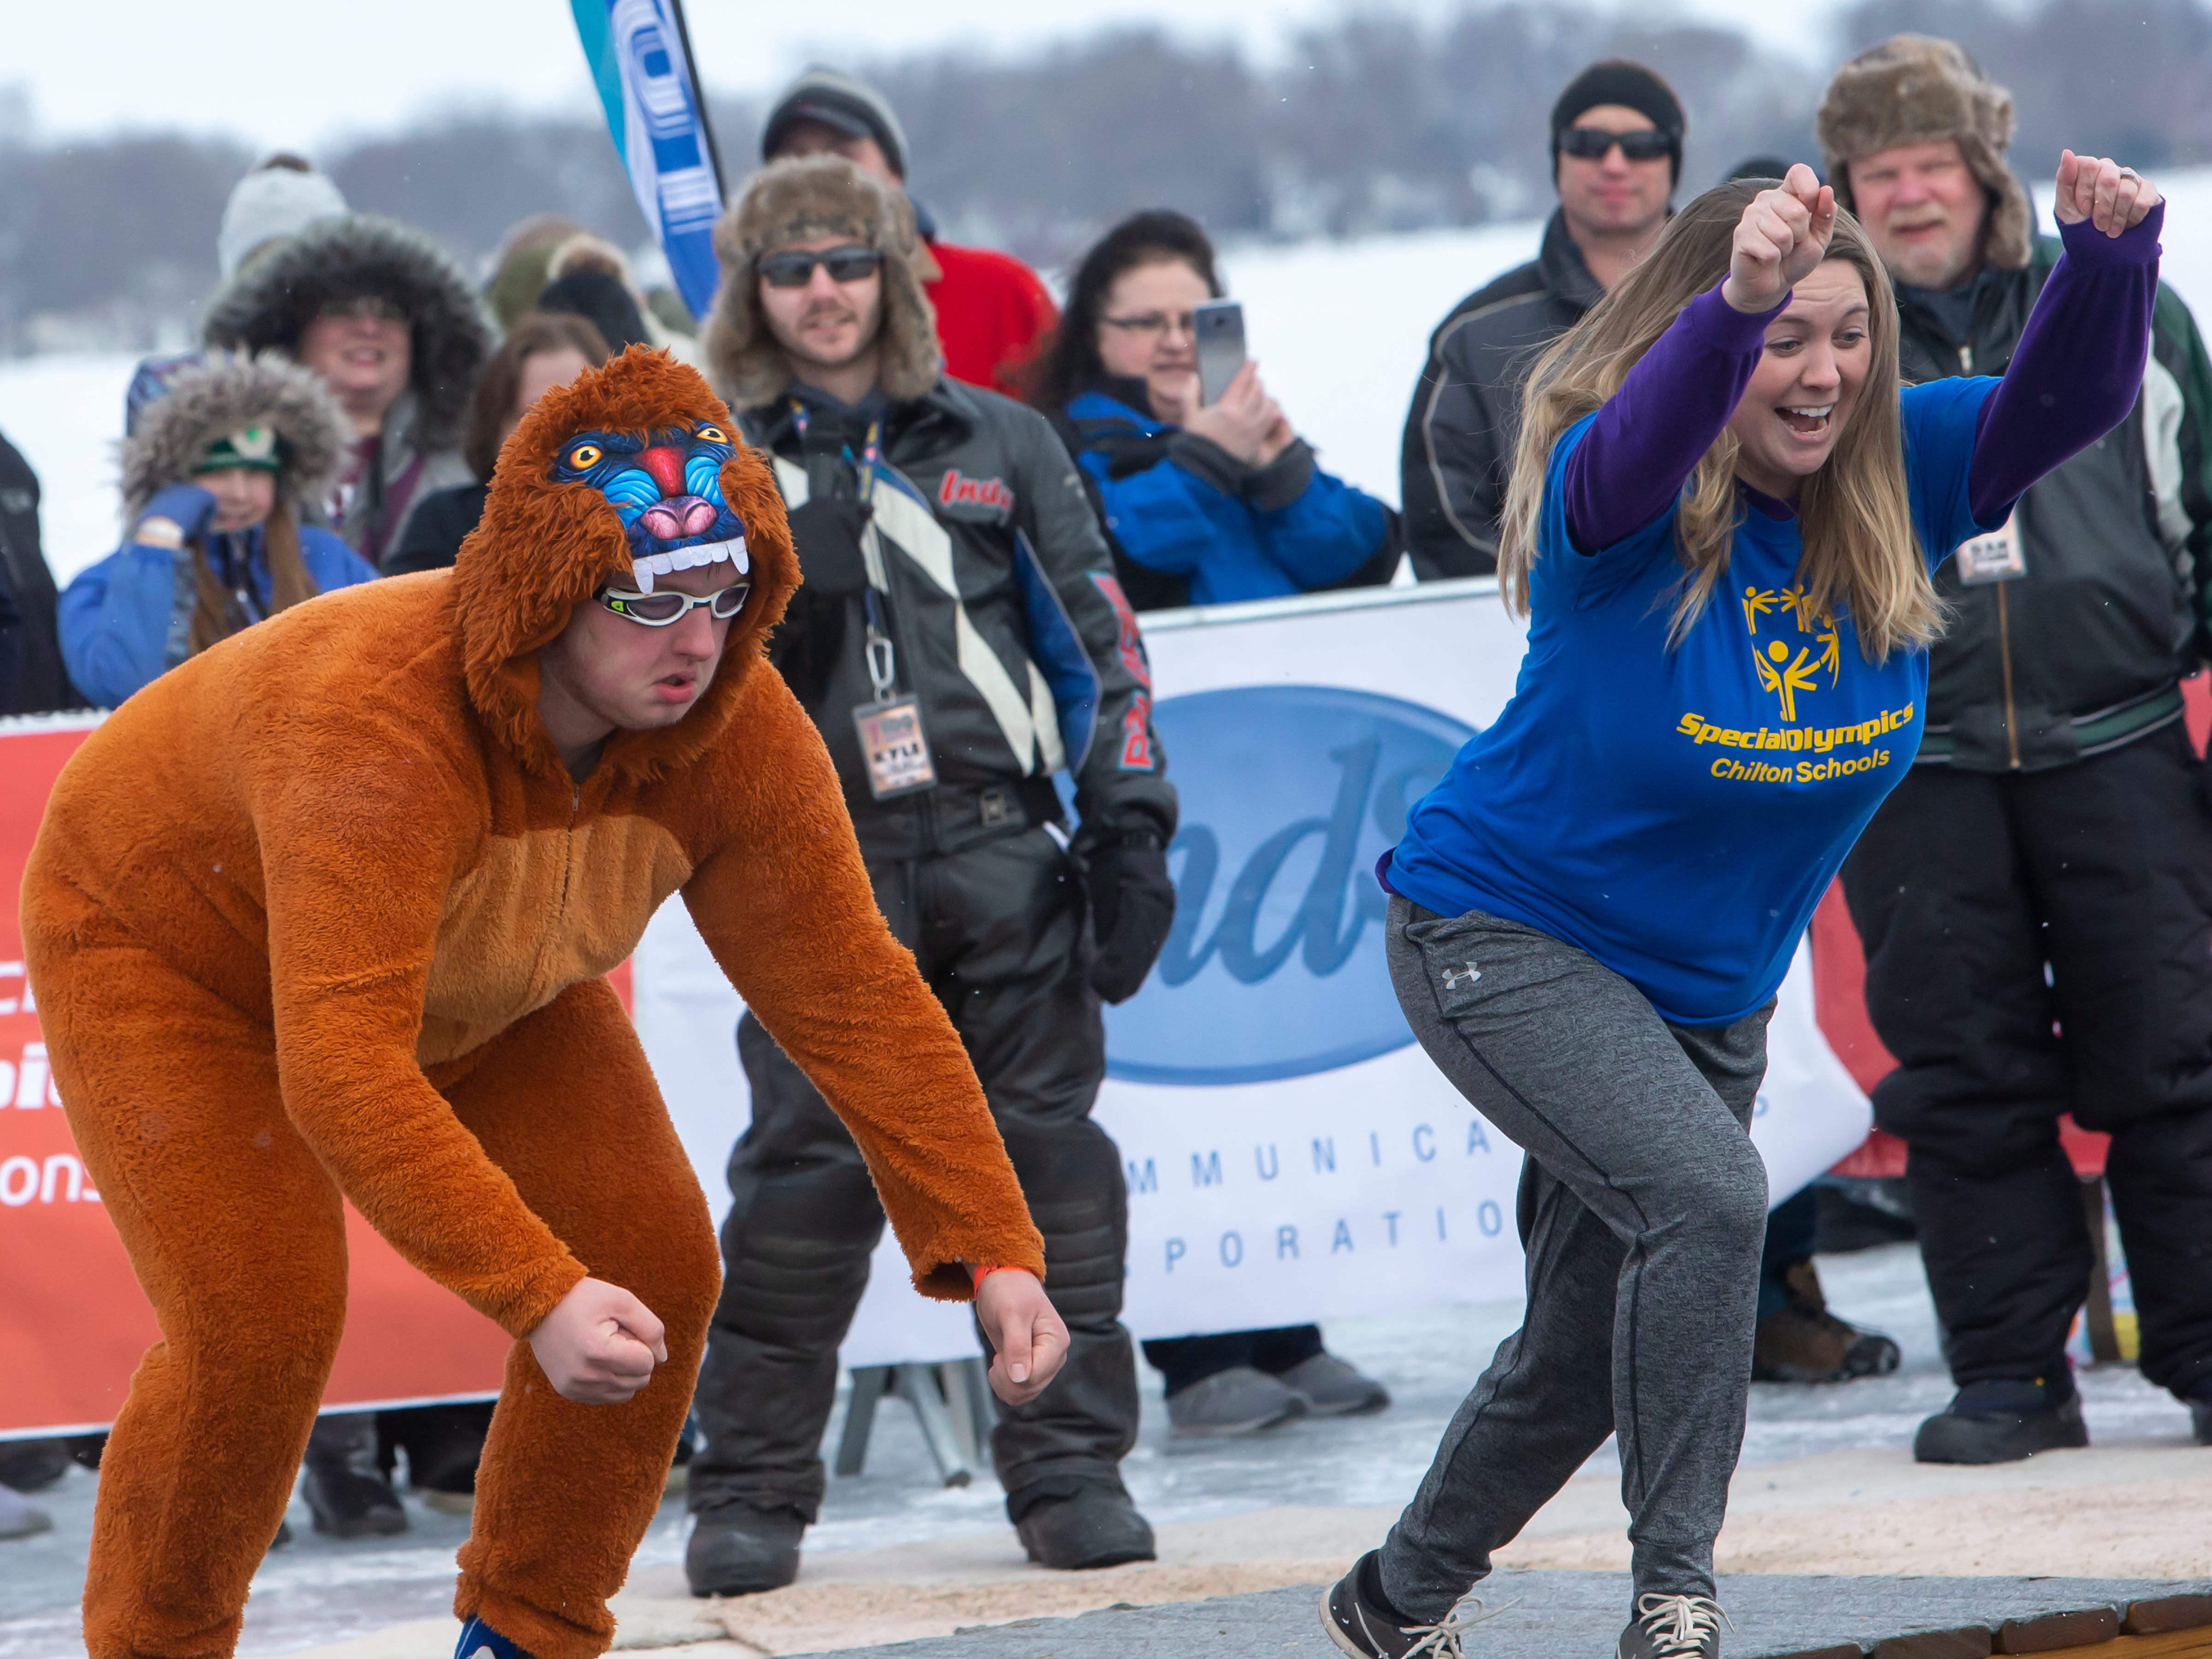 Participants count one, two, three, jump during the Special Olympics Wisconsin Polar Plunge in Oshkosh, Wis., on Saturday, February 16, 2019, at Miller's Bay in Menominee Park.